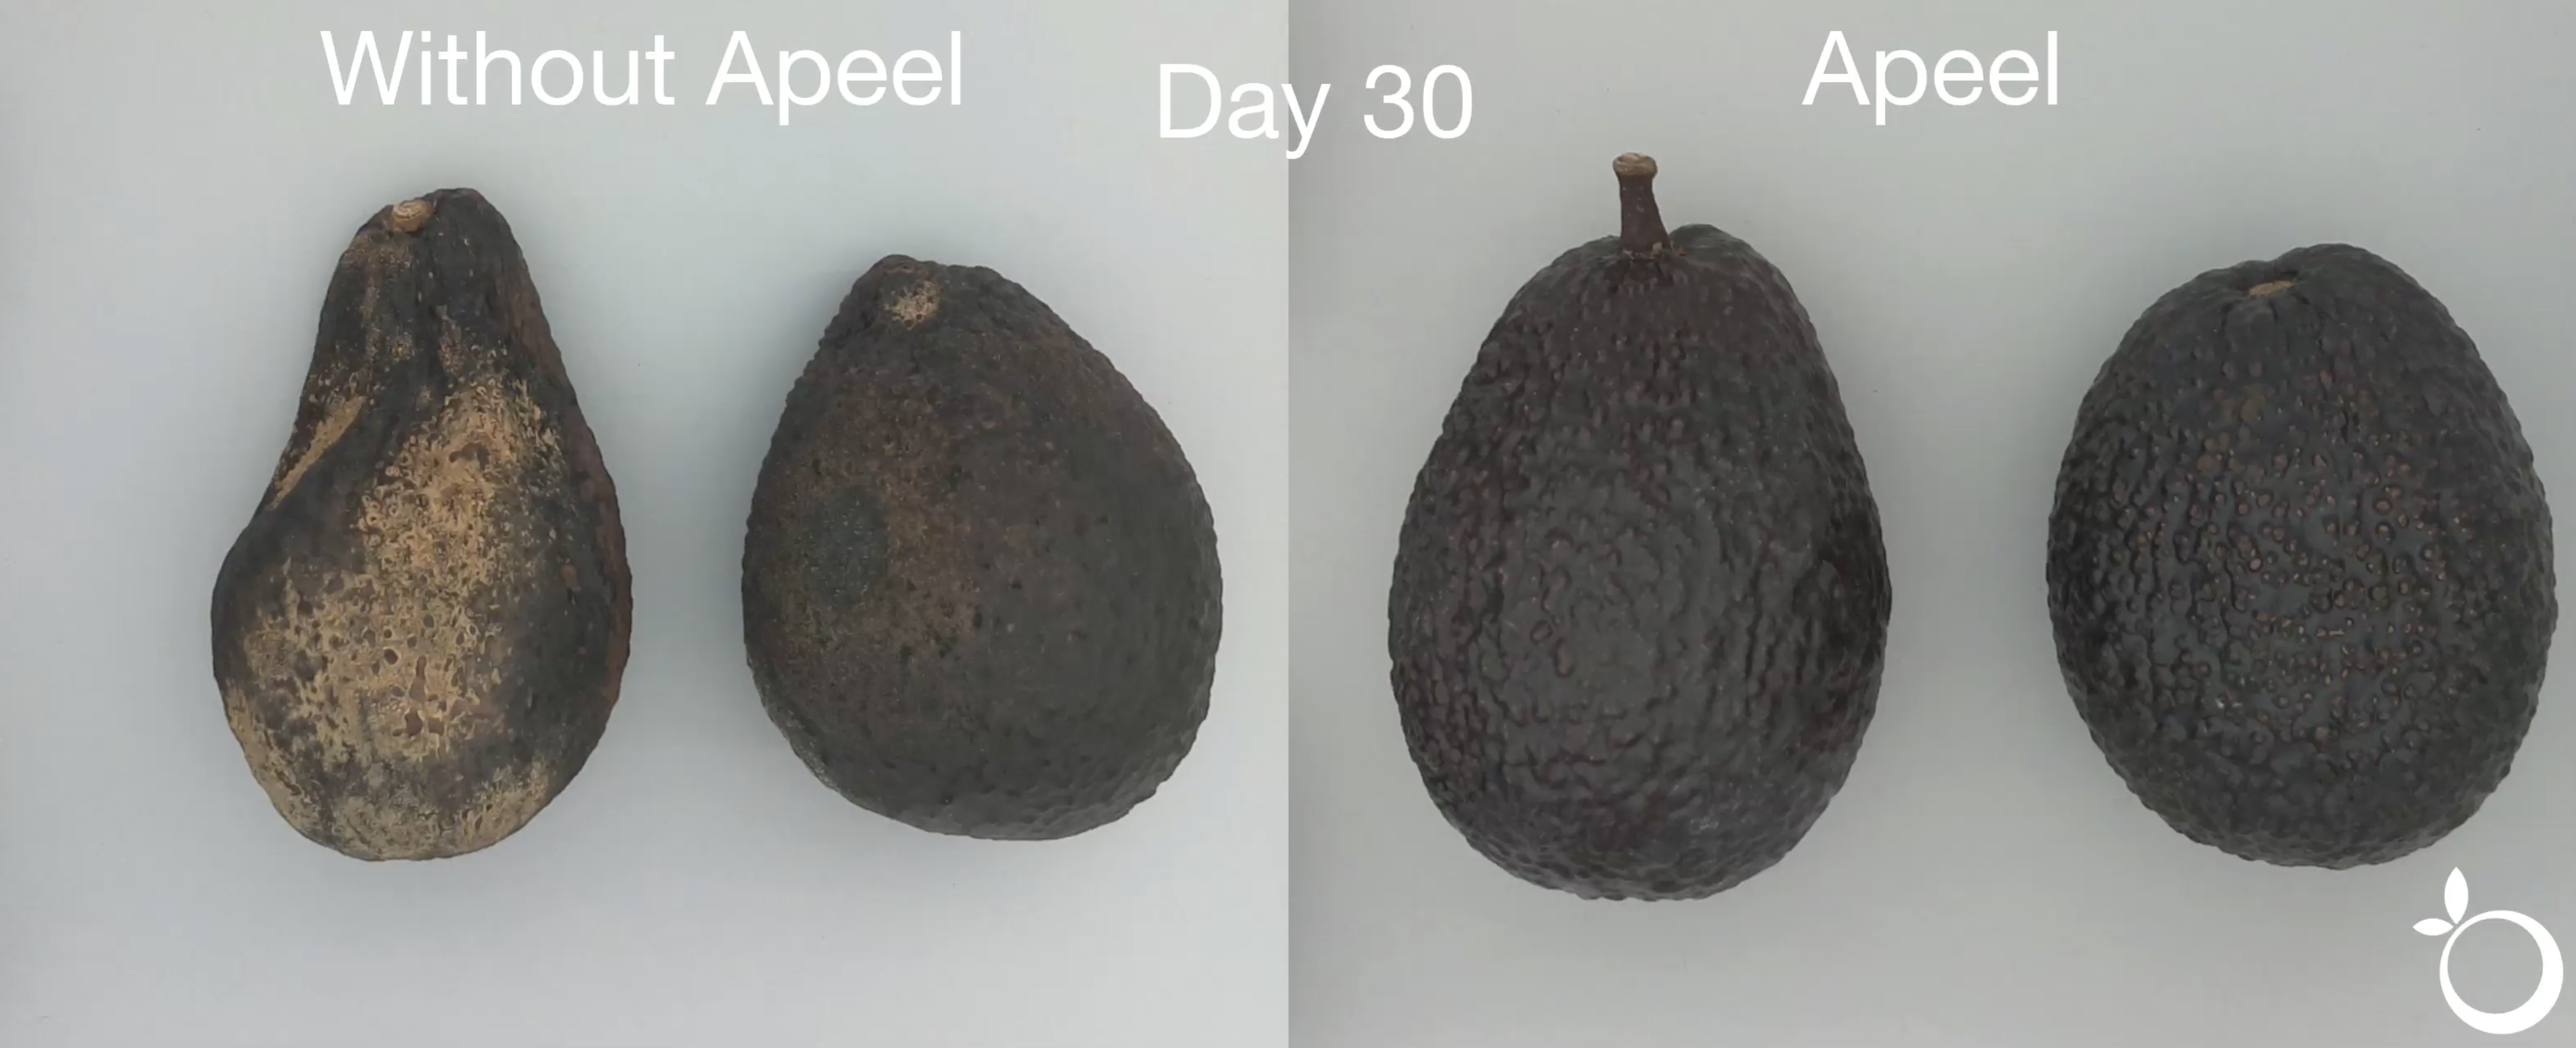 avocados on grey background. On the left they are untreated and starting to rot, on the right treated with Apeel.